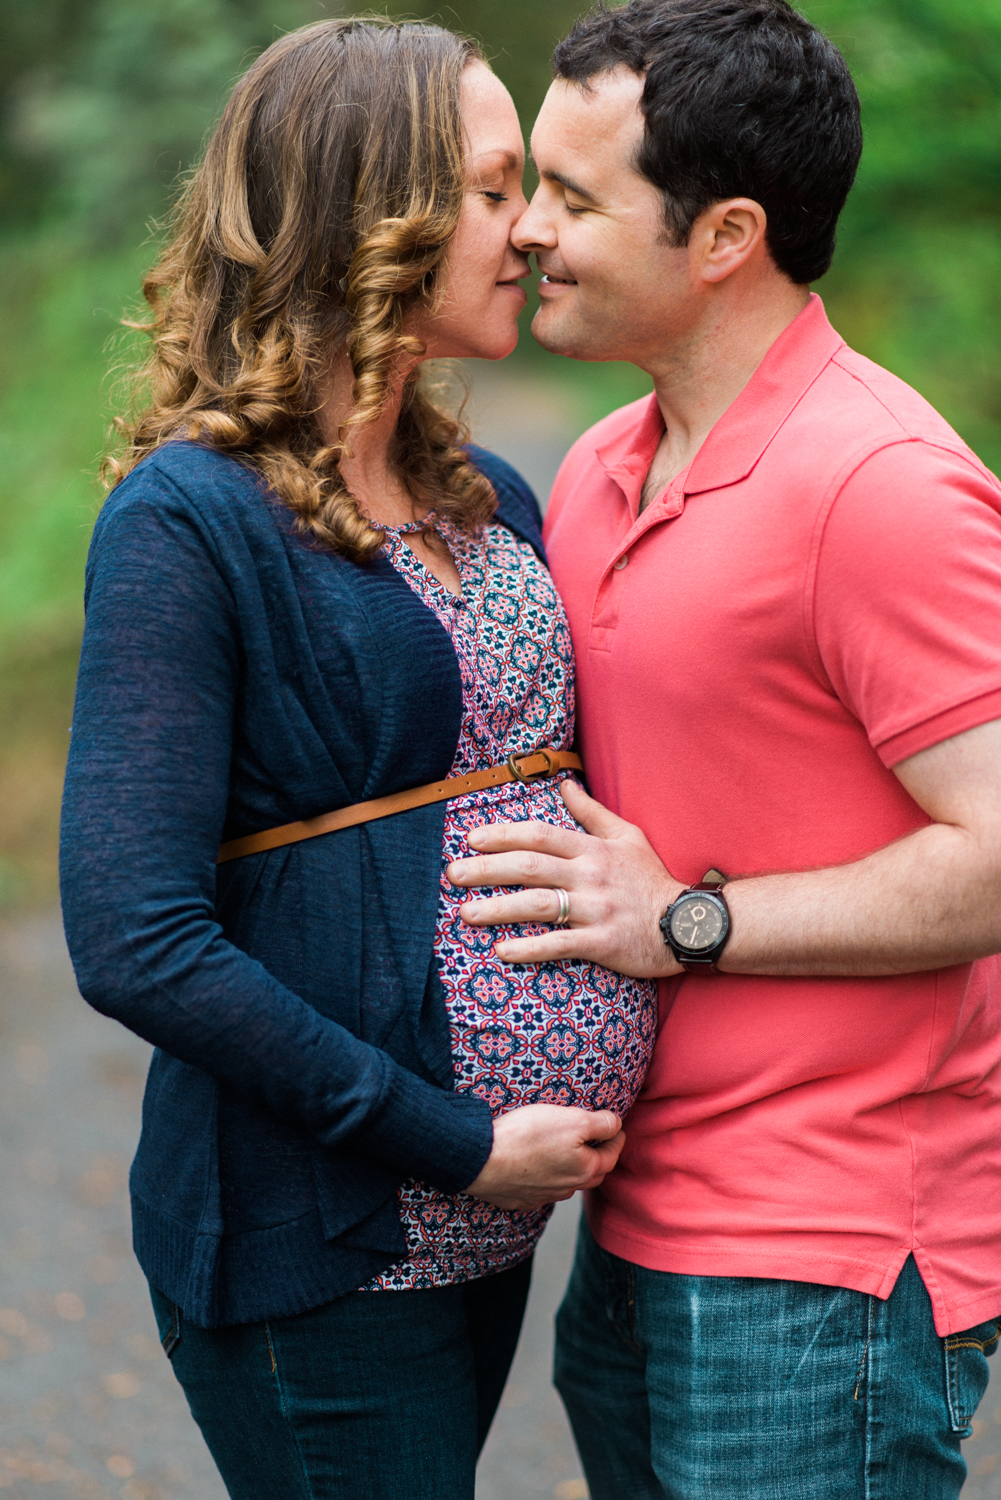 forest-park-maternity-photography-portland-shelley-marie-photo-06.jpg